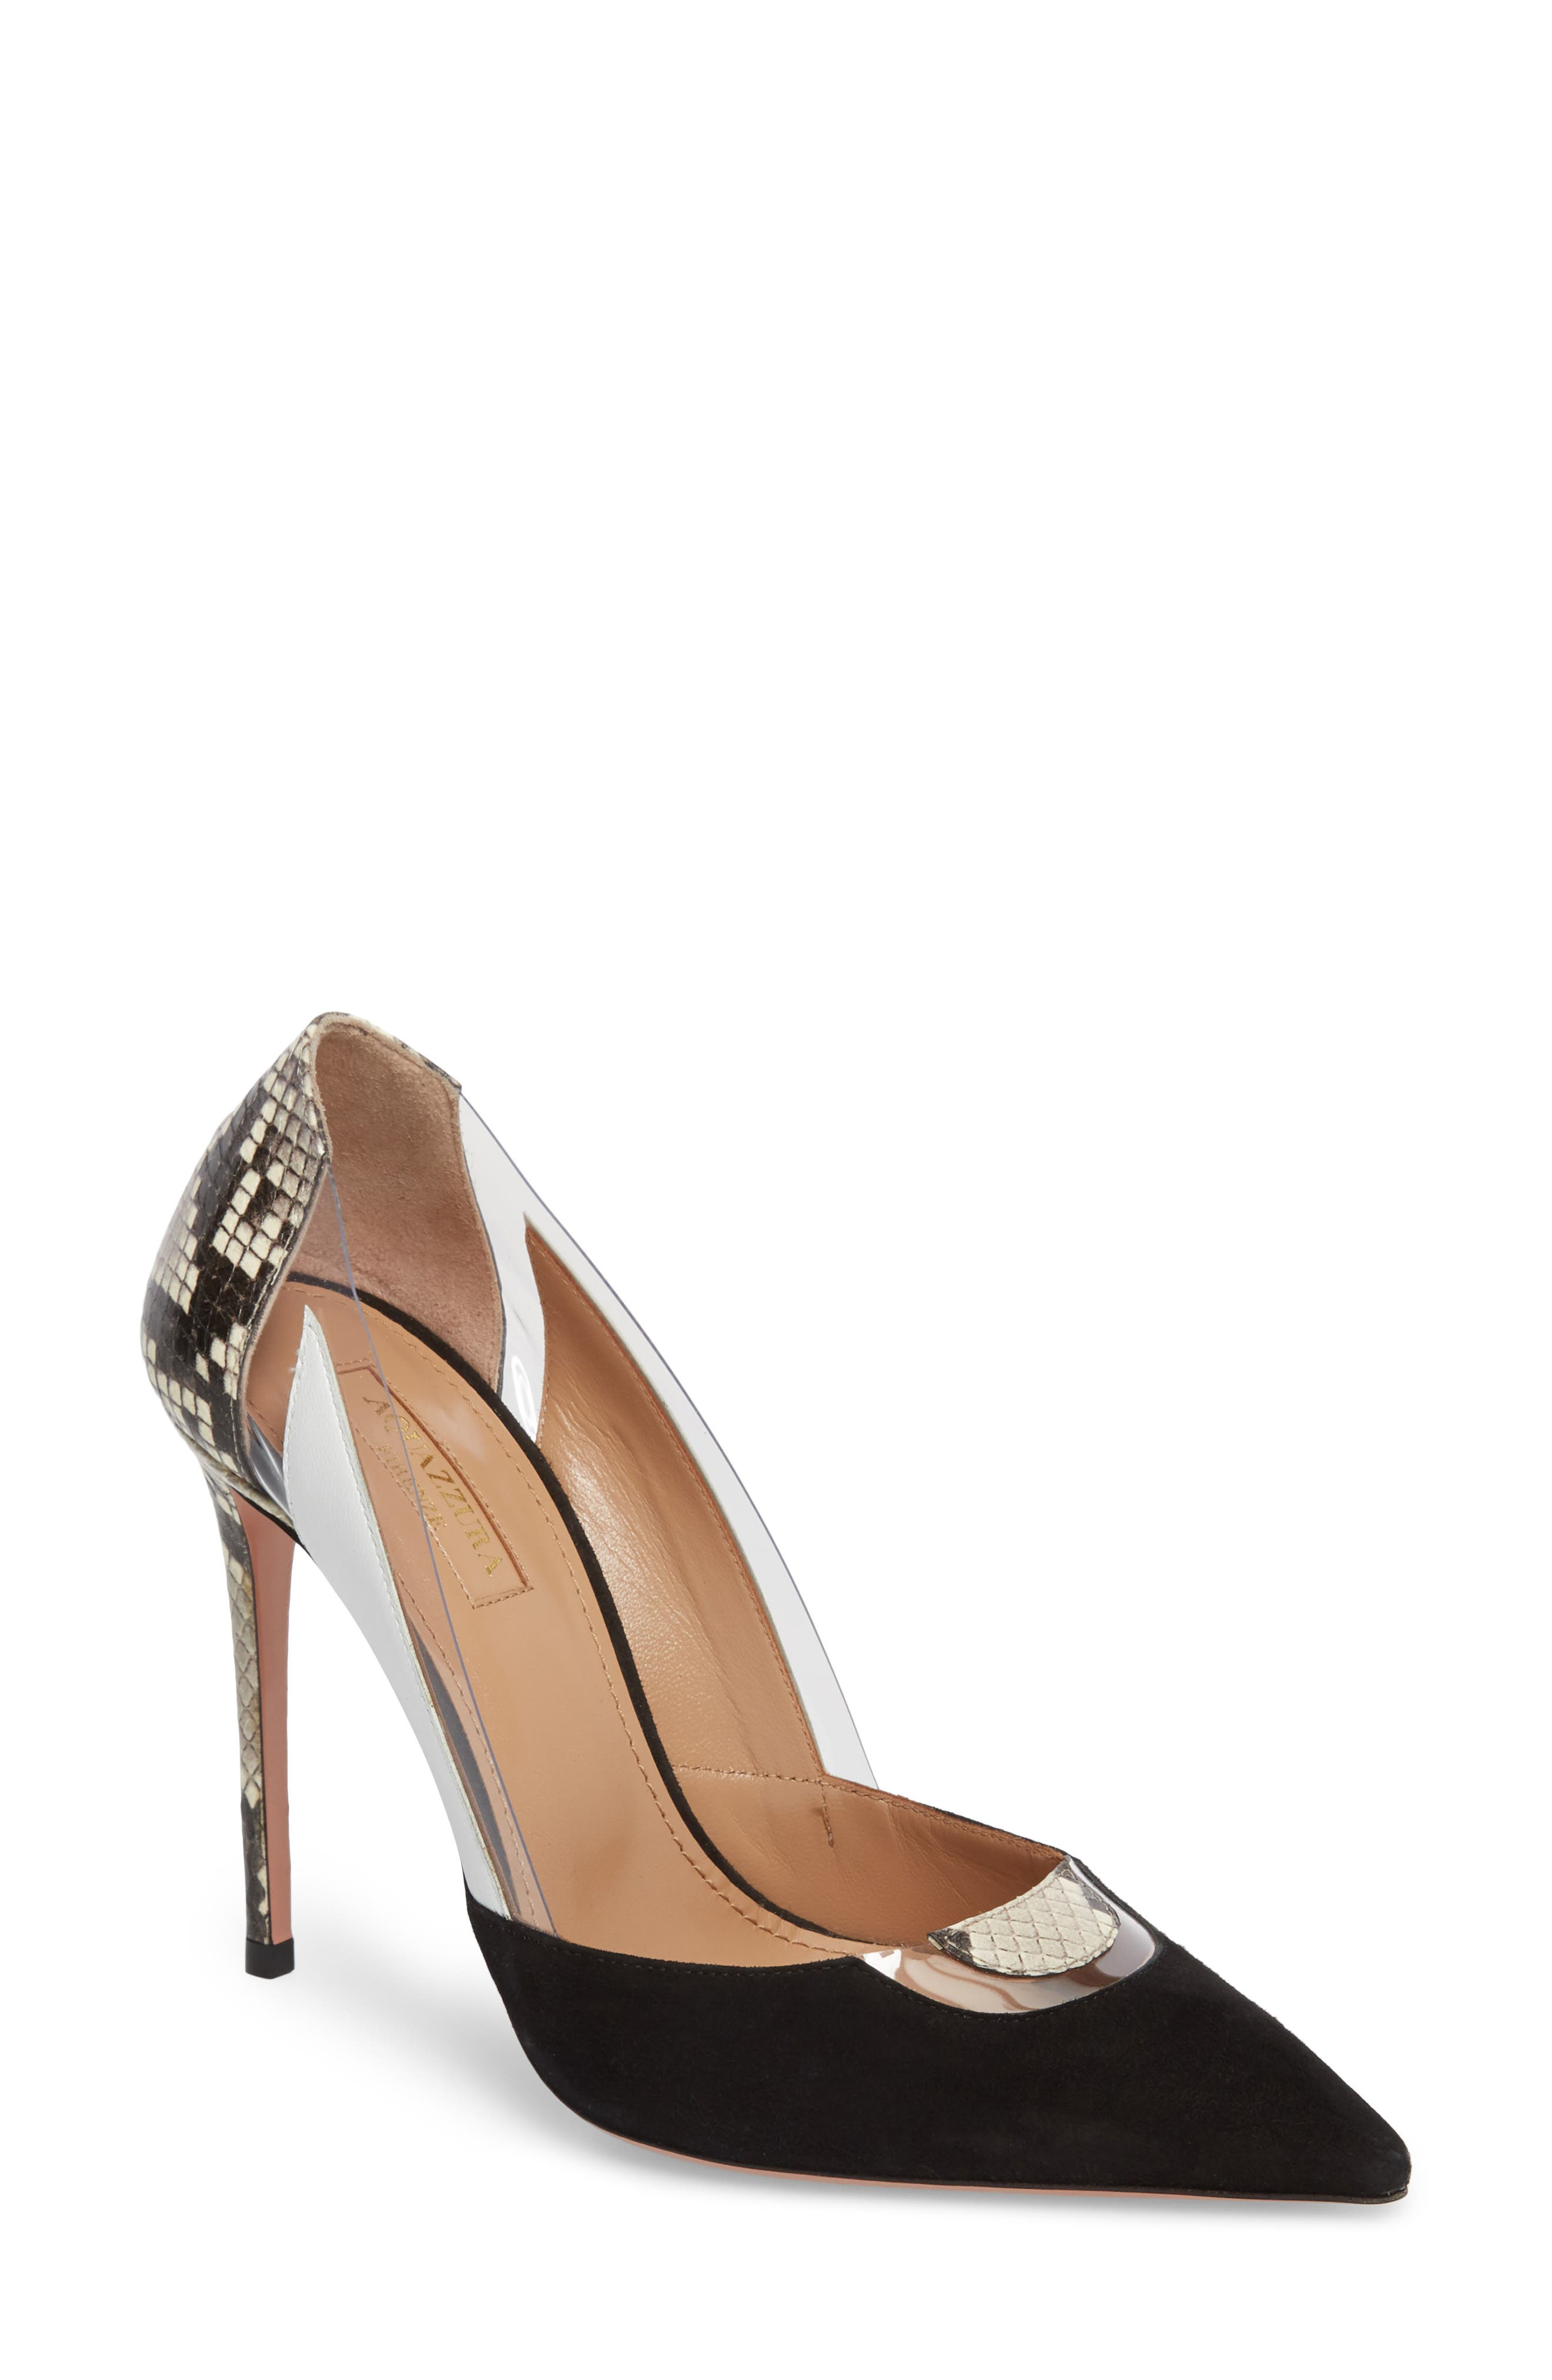 Aquazurra Fearless Genuine Snakeskin Pointy Toe Pump,                             Main thumbnail 1, color,                             Black/ Snakeprint